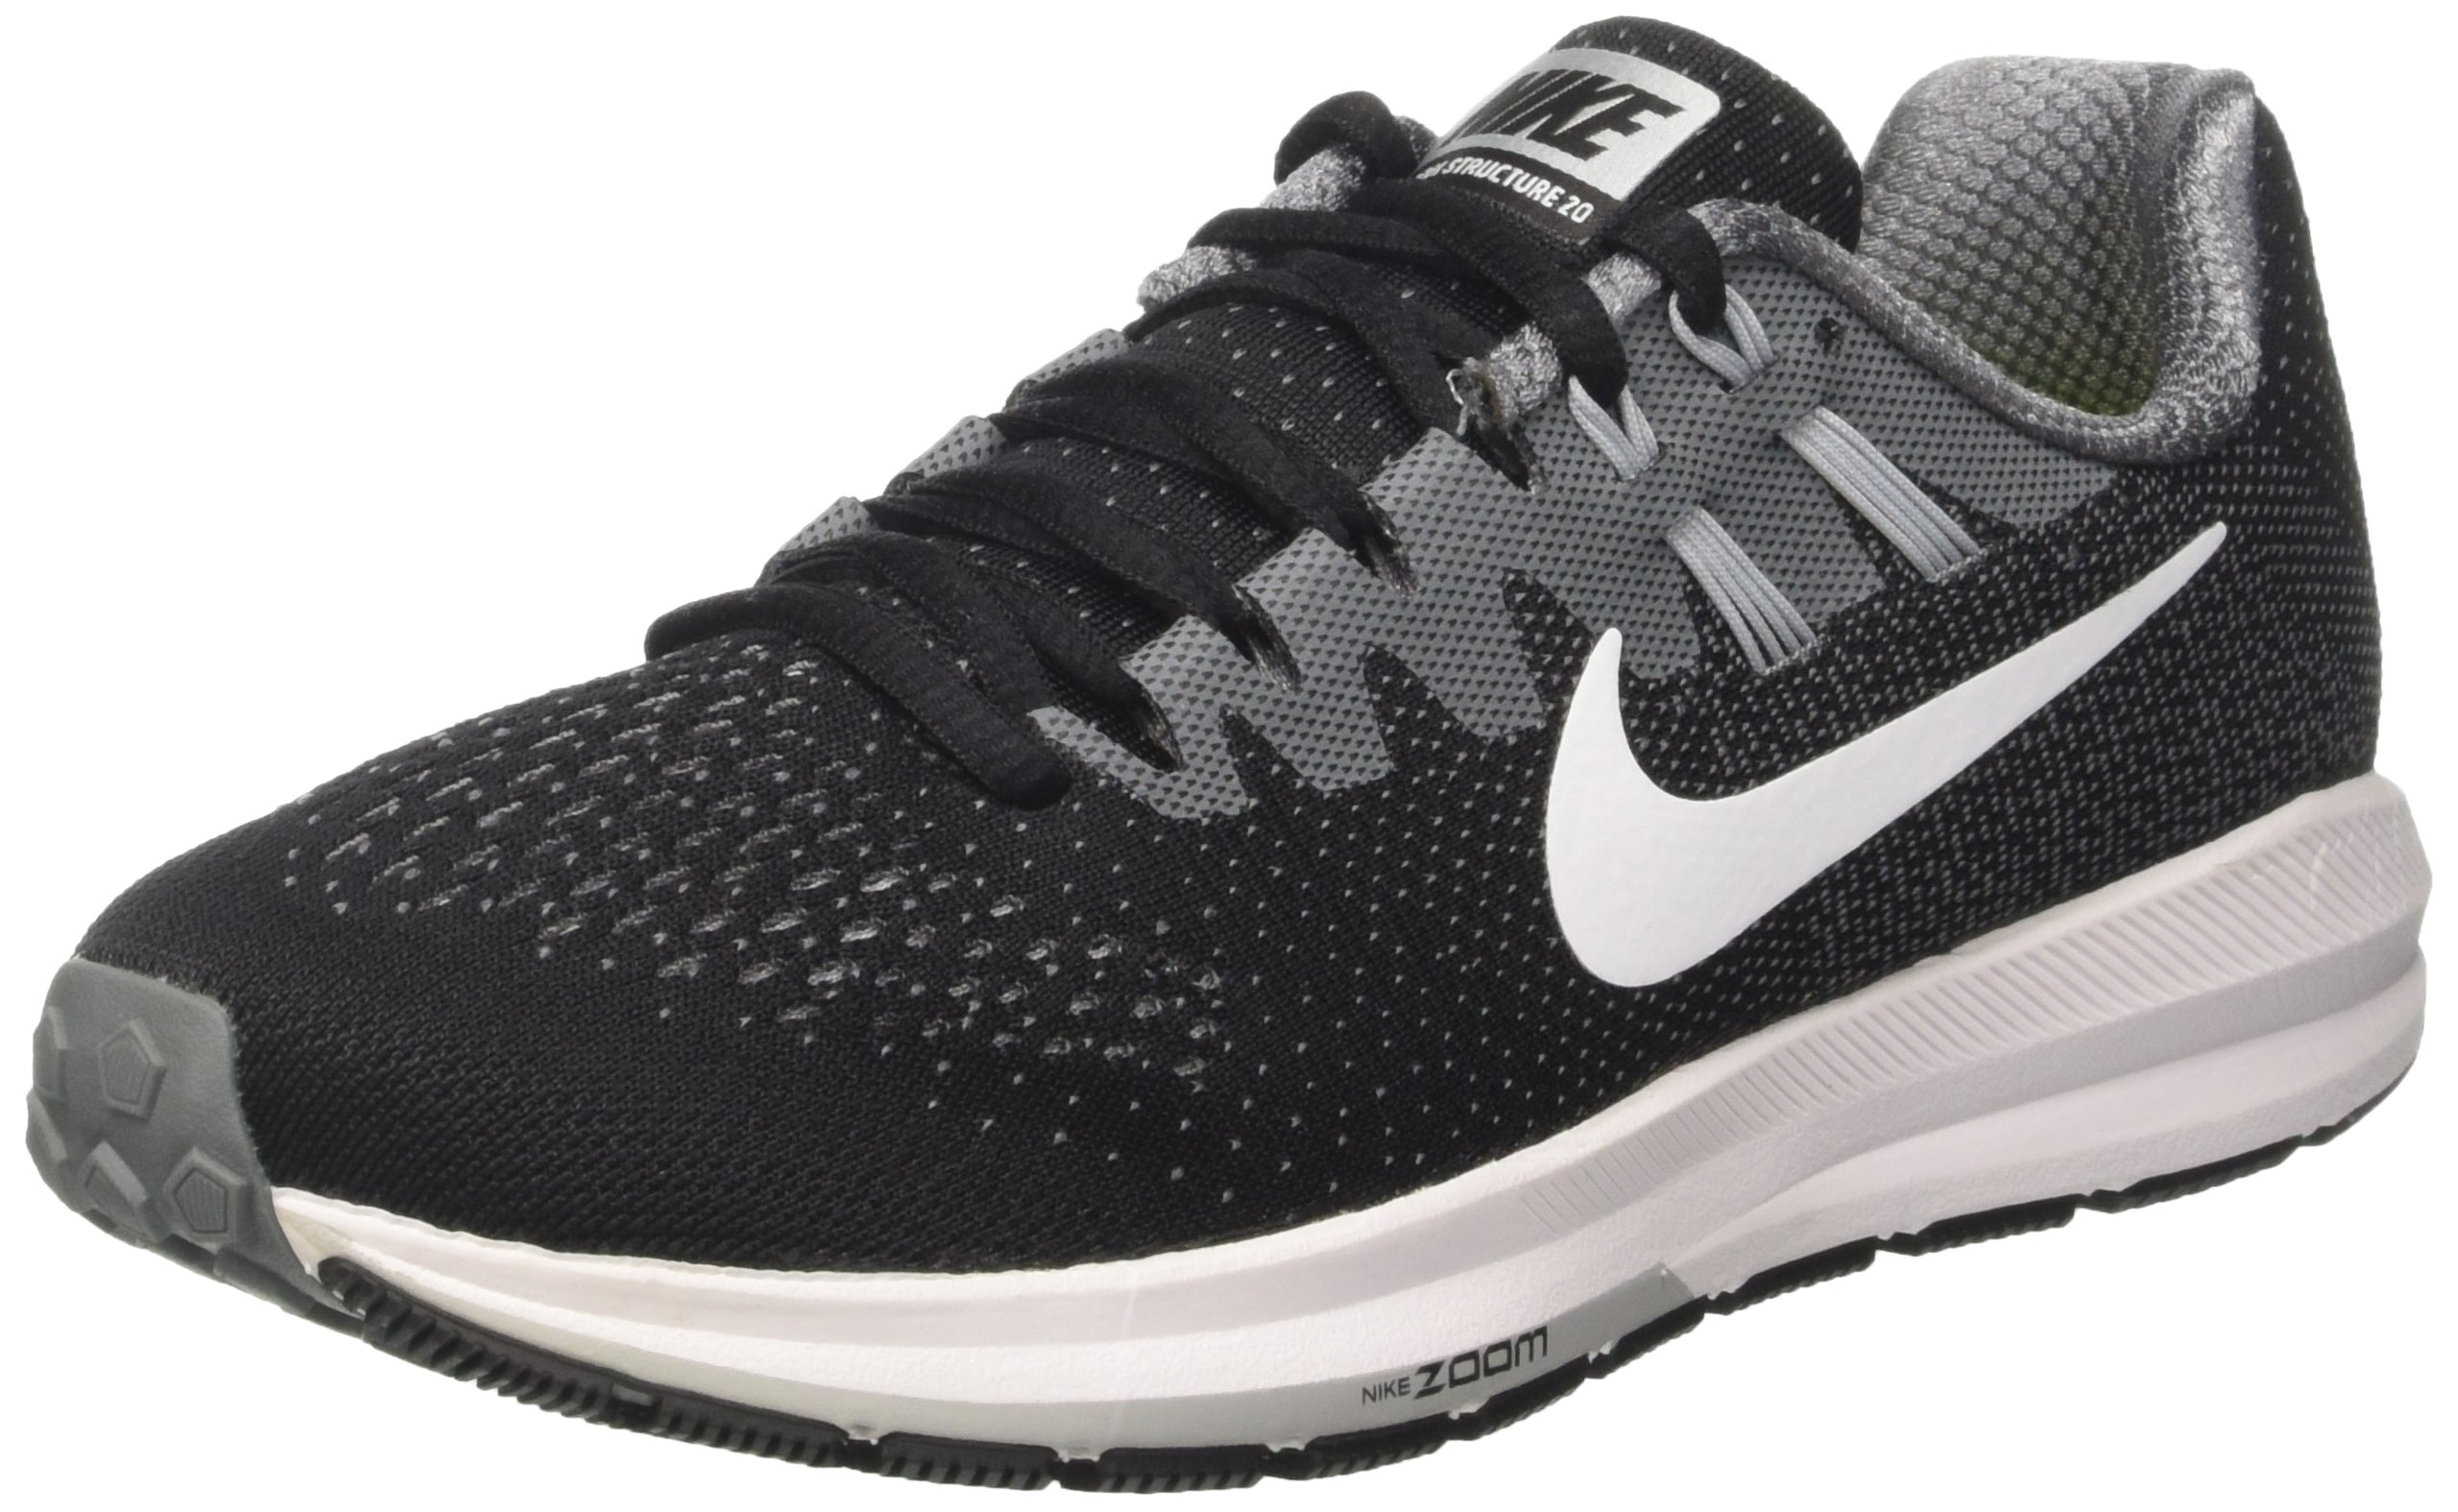 6ae27352c111 Galleon - Nike Women s Air Zoom Structure 20 Running Shoe